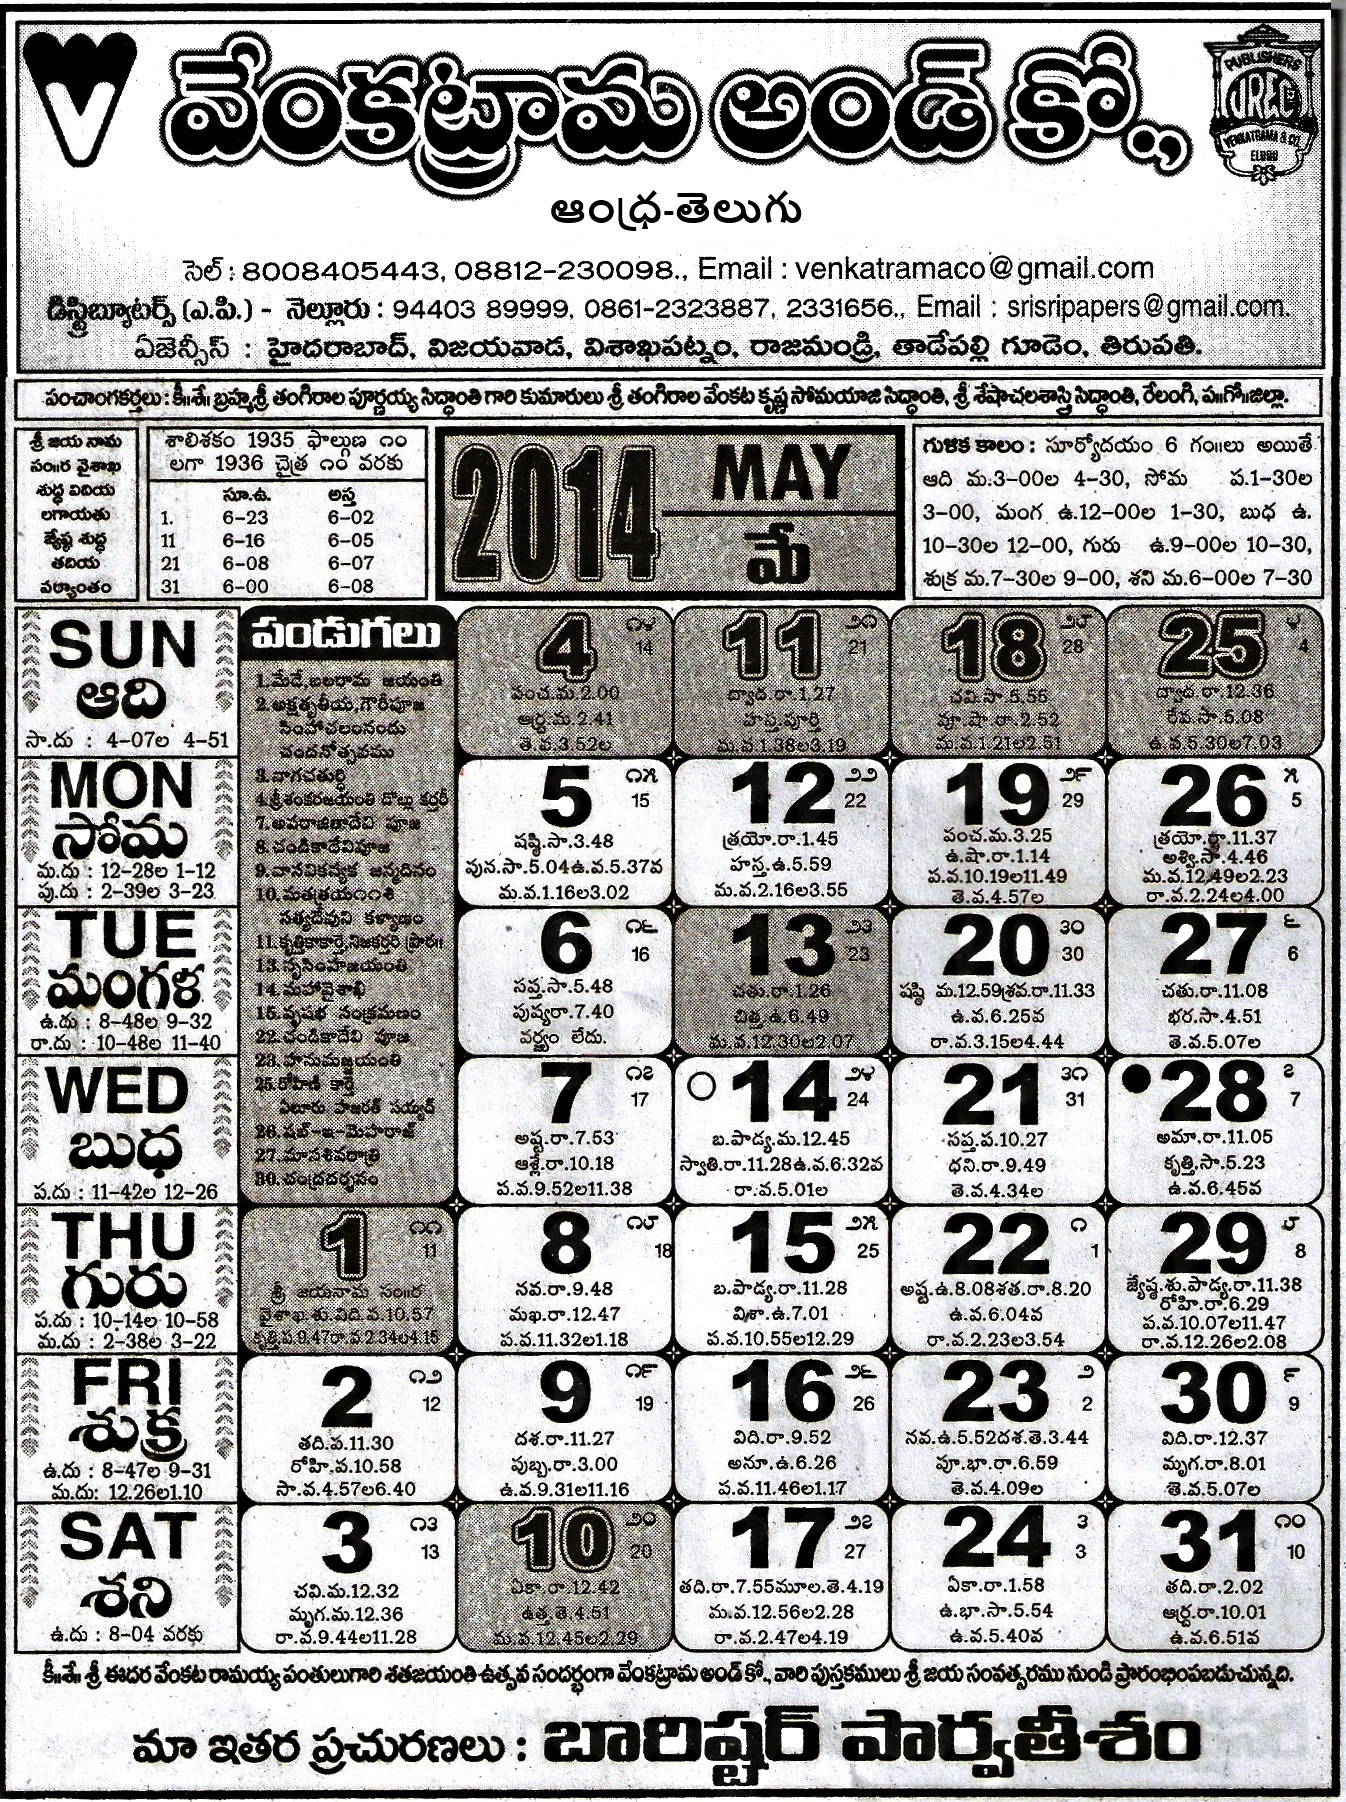 ... and Co Telugu Calendar 2013 calendar for your viewing pleasure